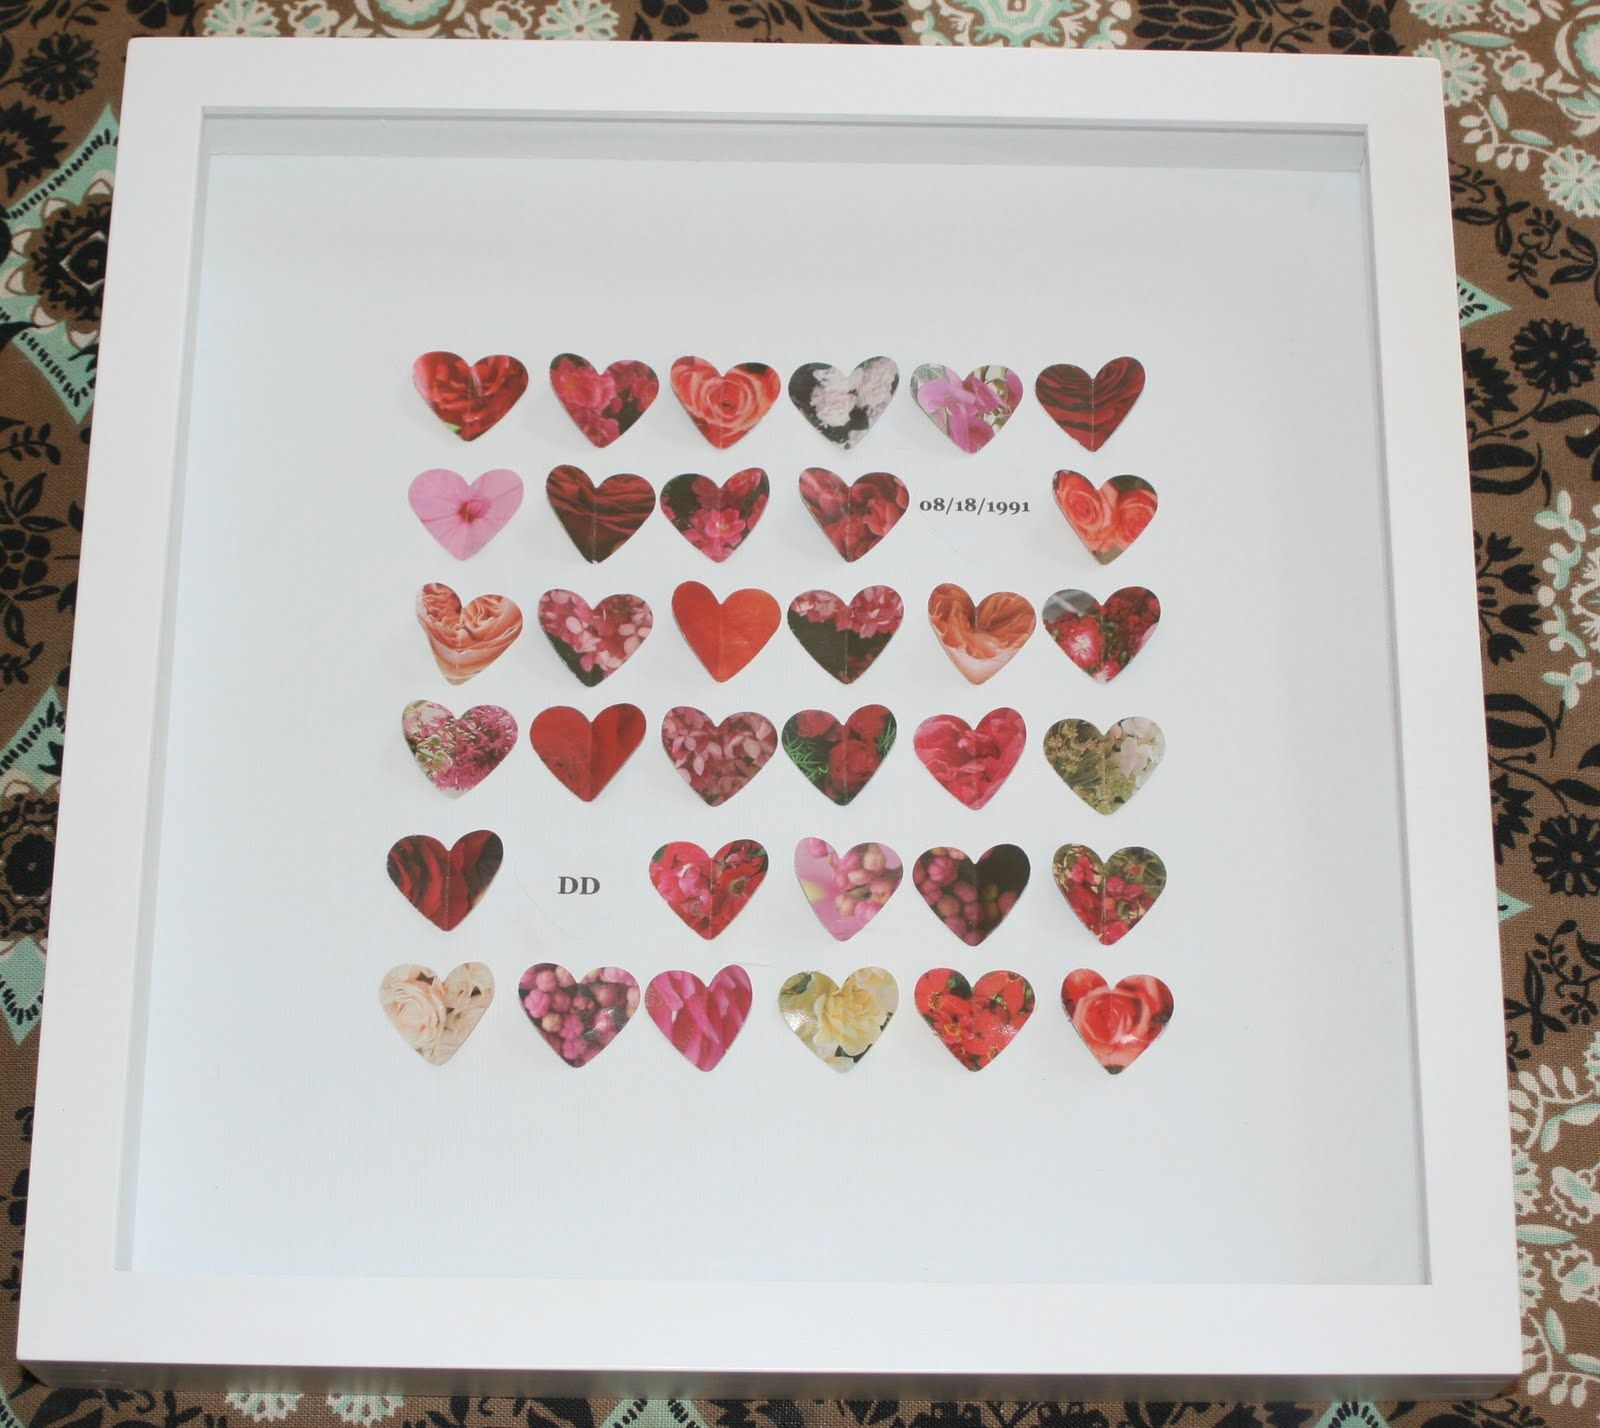 A darling anniversary or wedding gift frame | Home Decor Inspiration ...